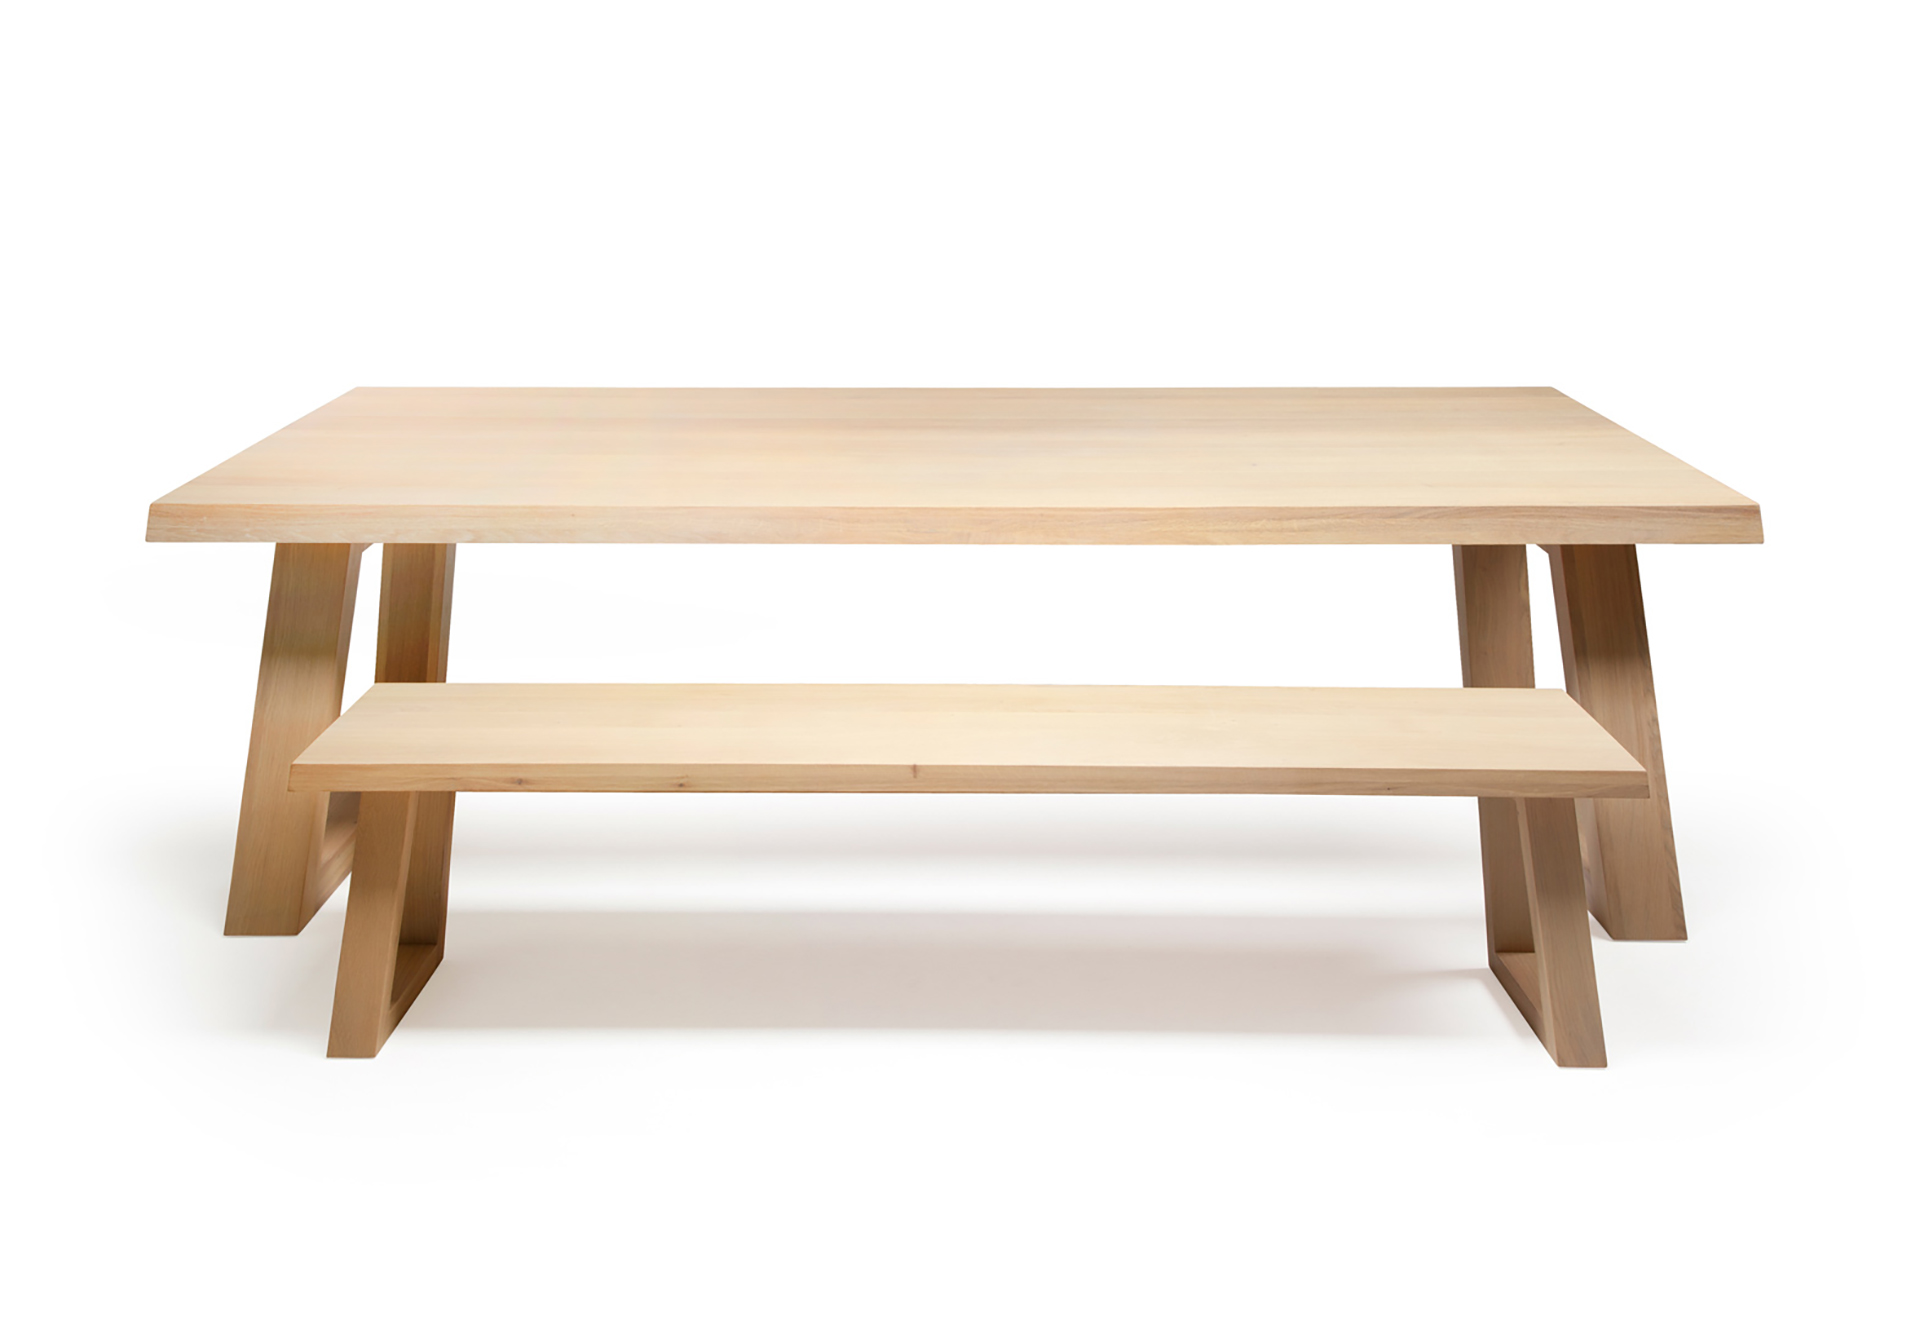 Eetbank Met Tafel.Design Bench Slide L Remy Meijers L Odesi Your Dutch Design